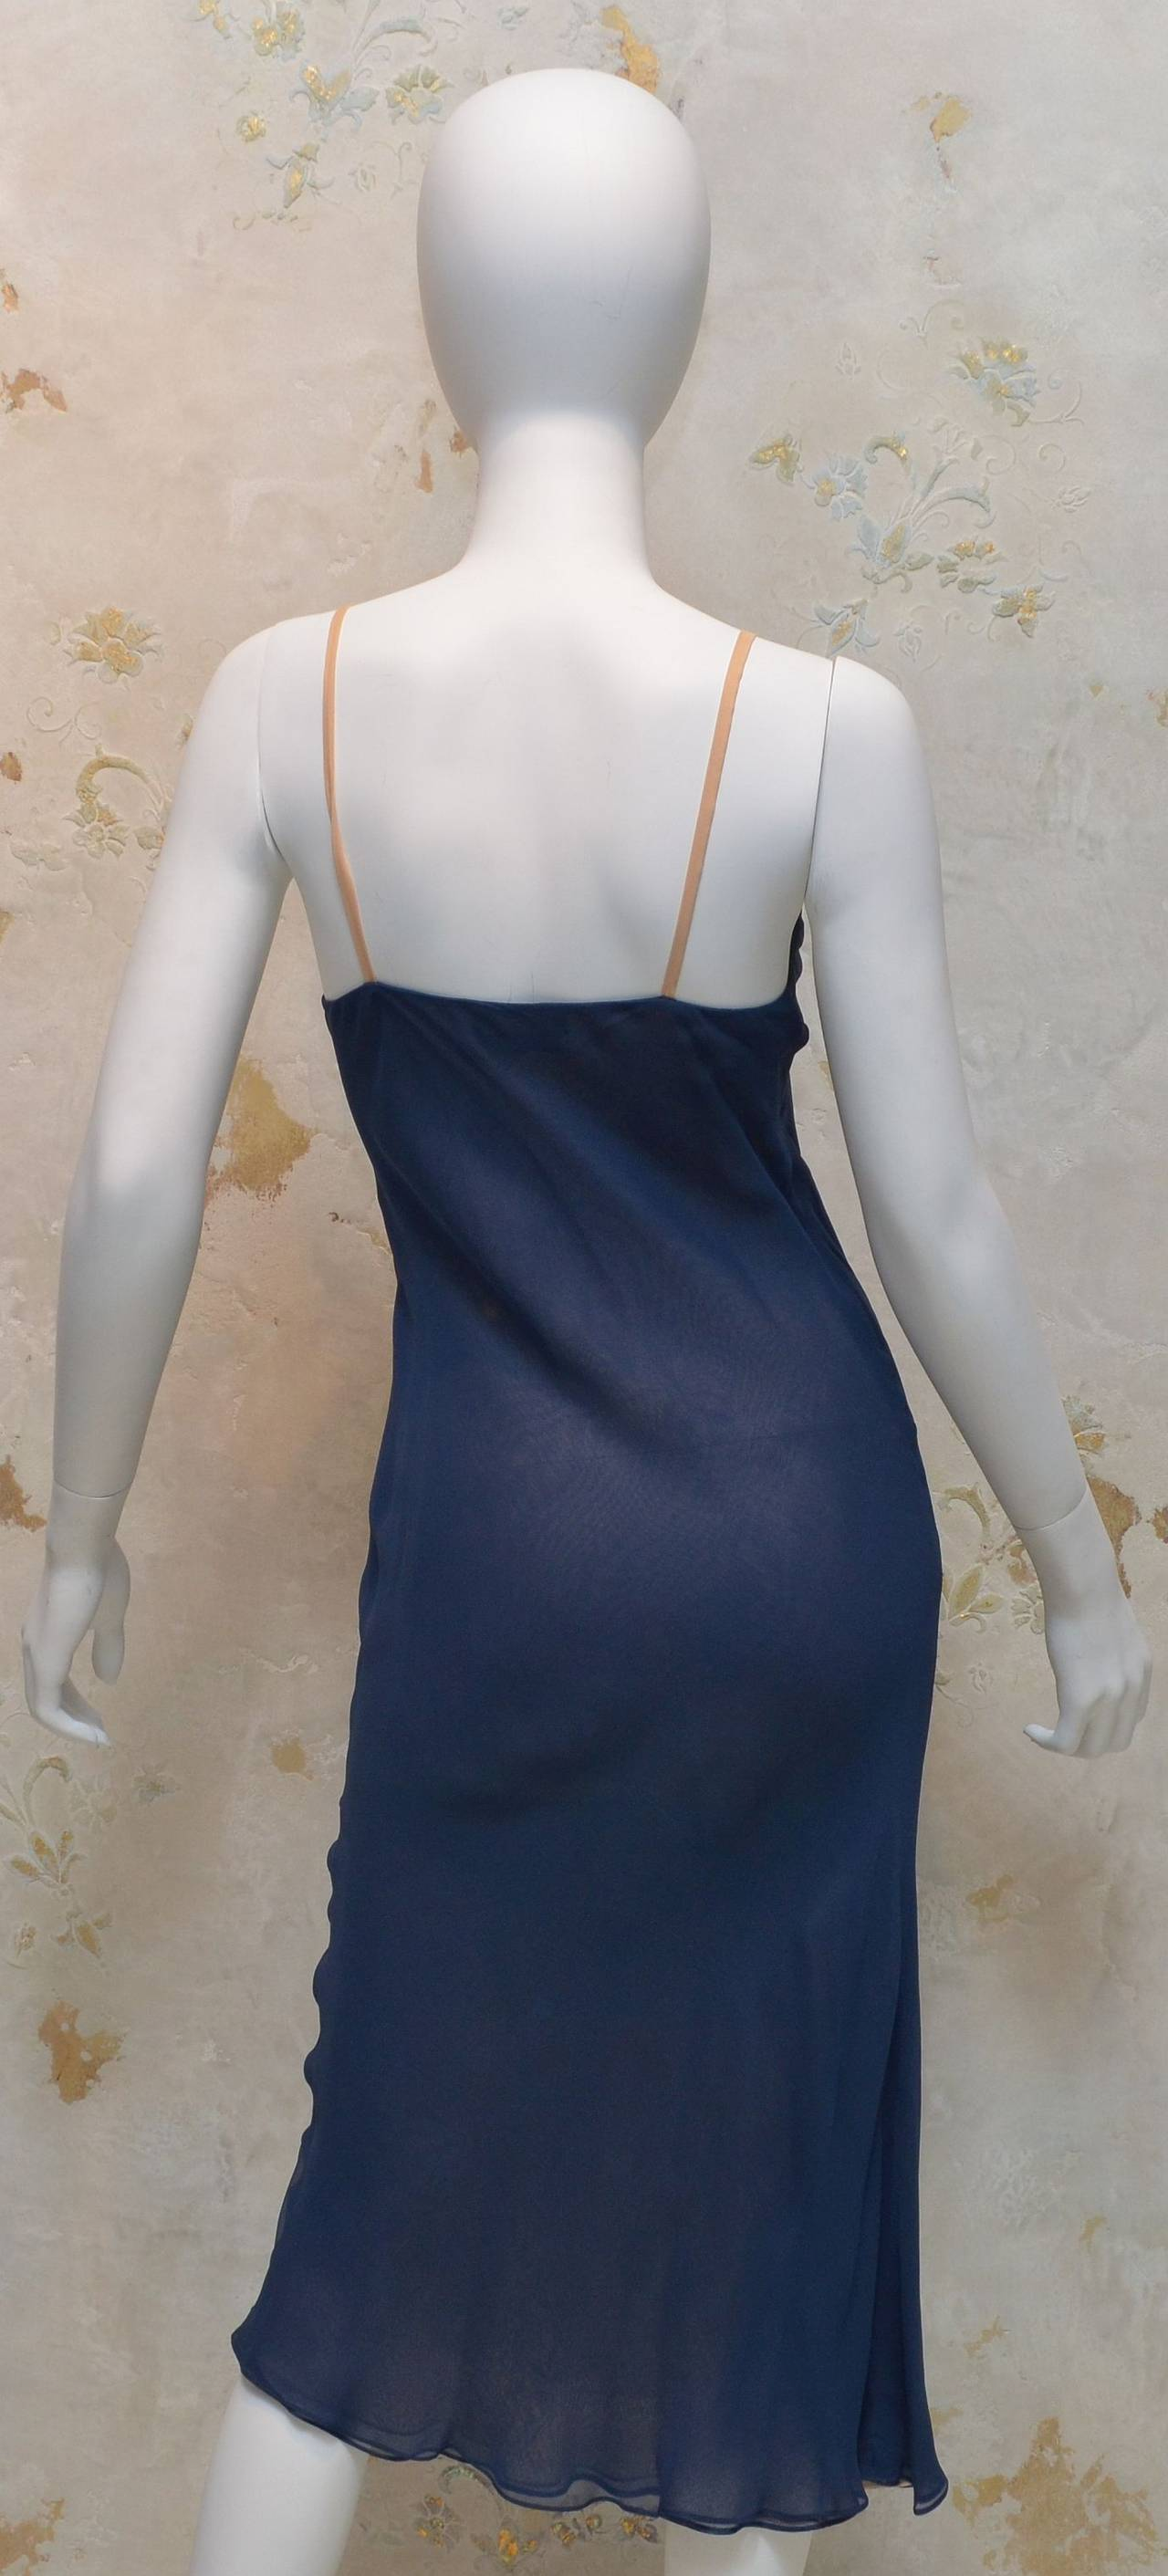 Vintage Halston Navy Blue Chiffon Slip Dress For Sale 1